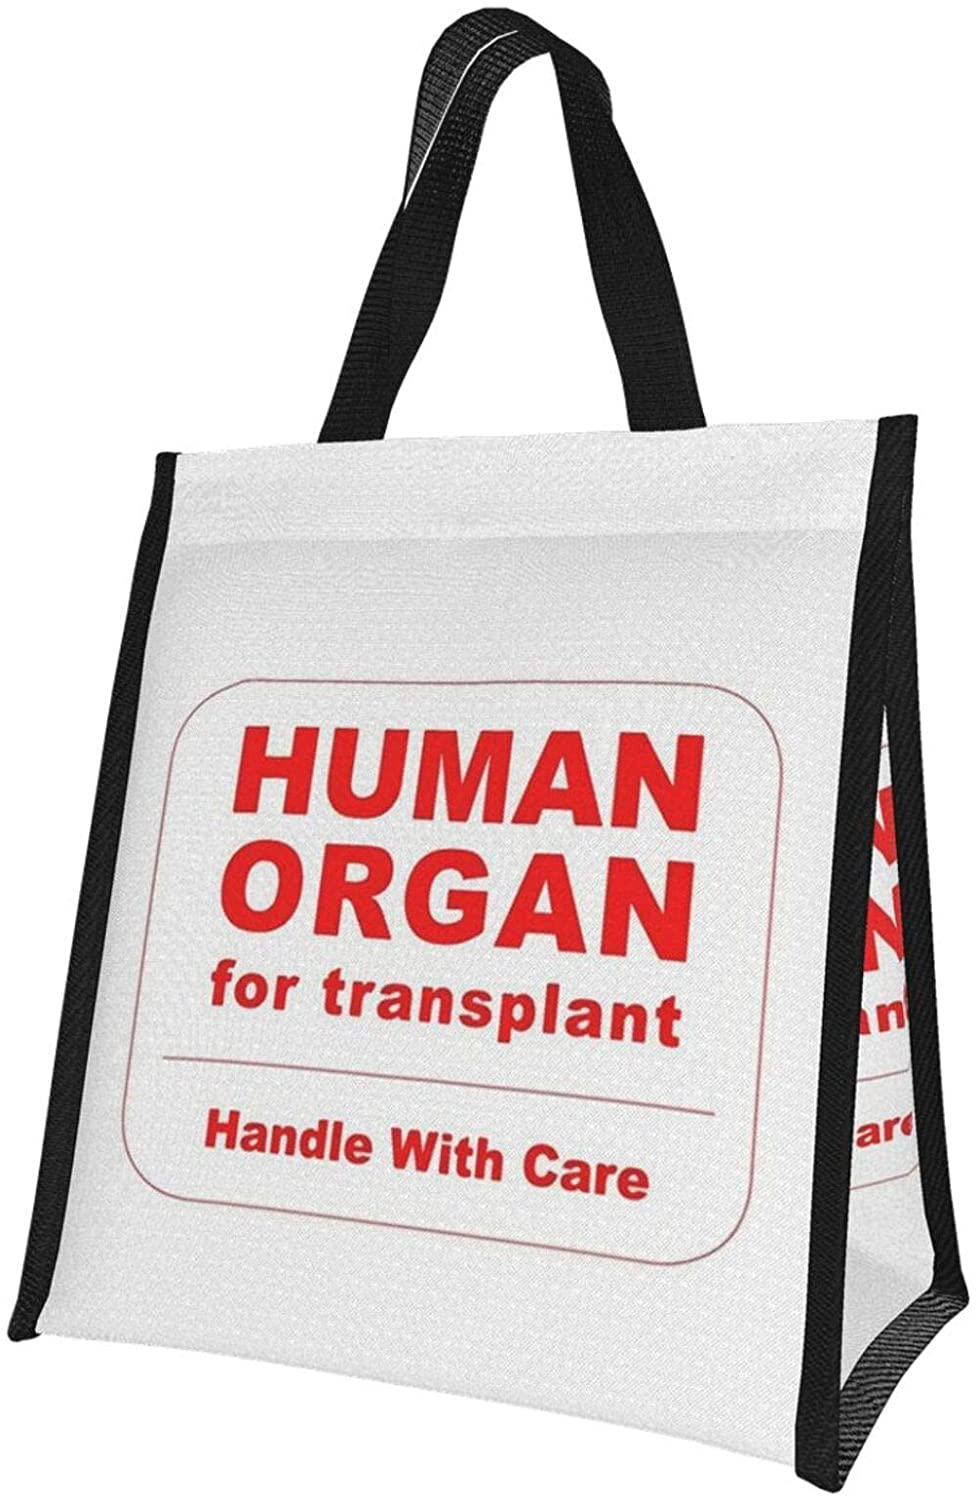 Reusable Lunch Bag,Human Organ for Transplant Lunch Bags Tote Bags for Women Lunch Box Insulated Lunch Container for Office Work School Picnic - 10 x 11 inch